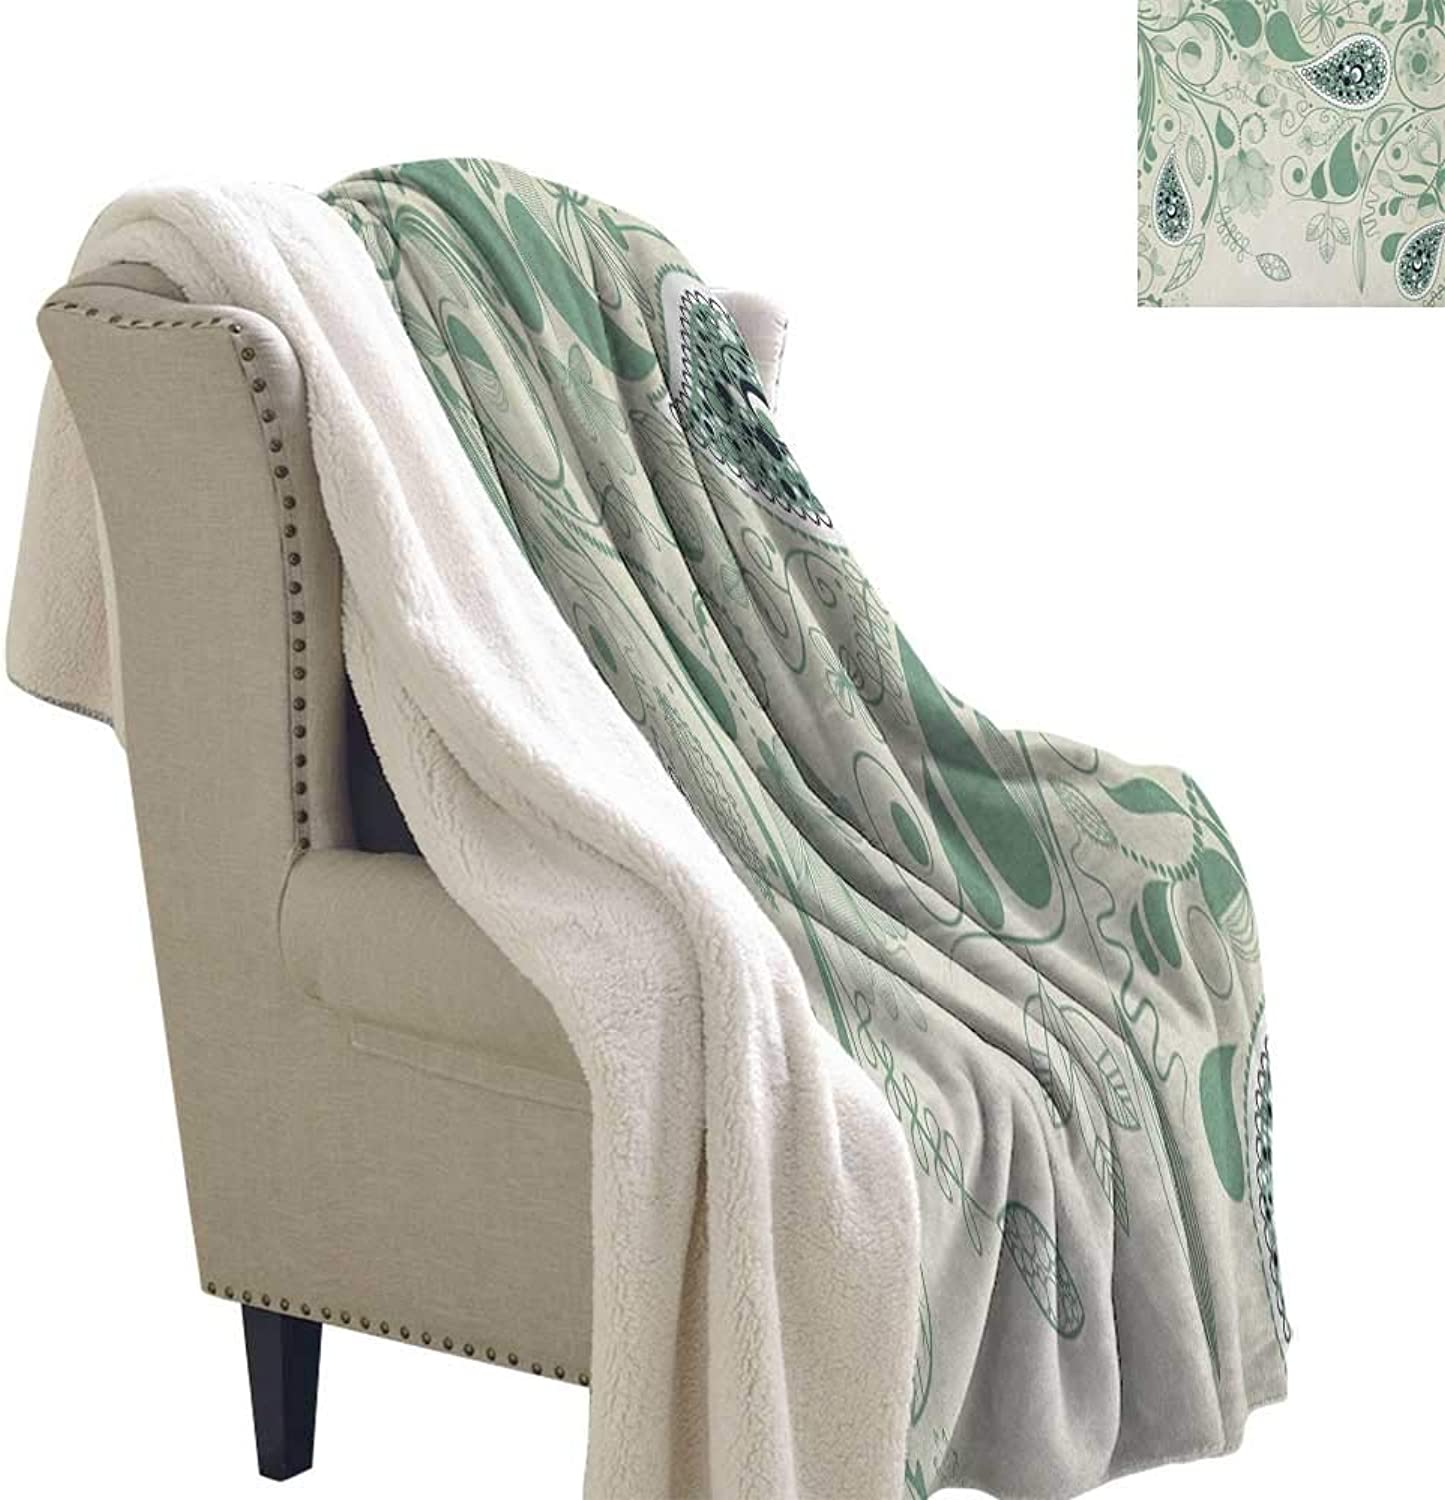 Suchashome Paisley Warm Breathable Comforter for Girls Kids Adults Vintage Aged Floral Paisley Patterns on Retro Art Background in Persian Style Blanket Small Quilt 60x47 Inch Laurel Green